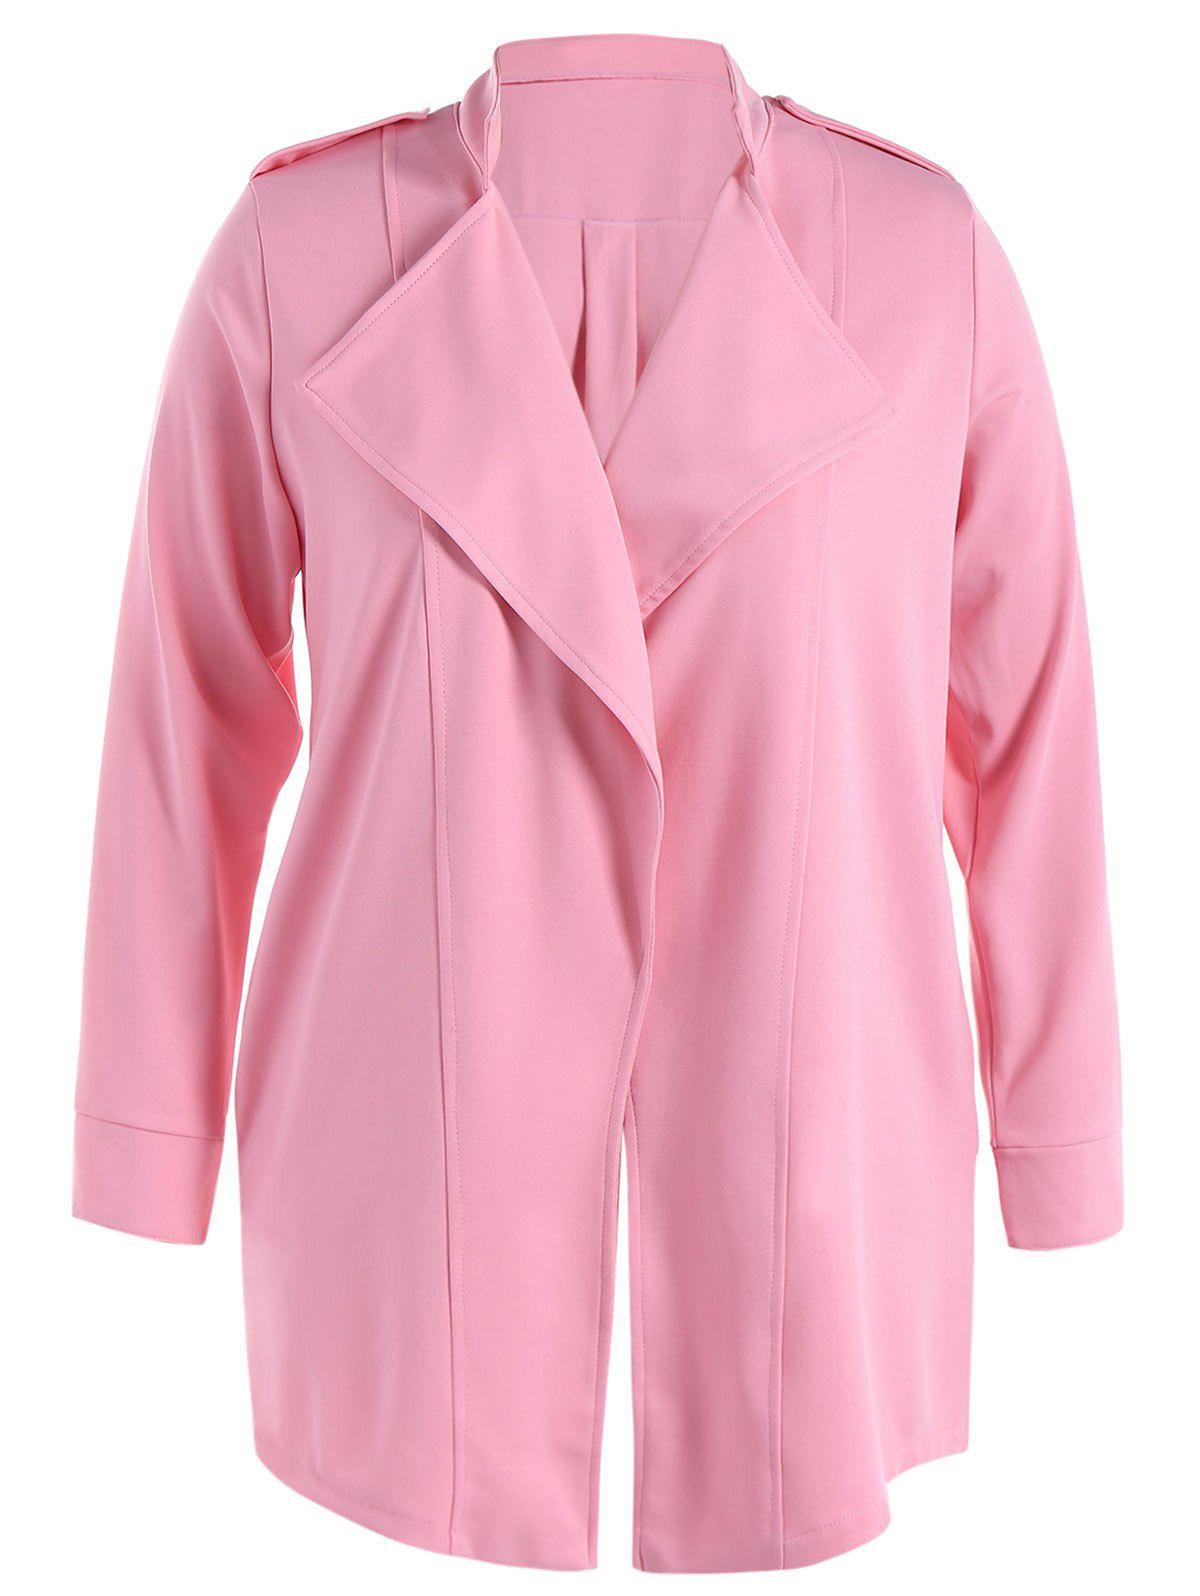 Stand Collar Waterfall Coat With Epaulet - PINK XL